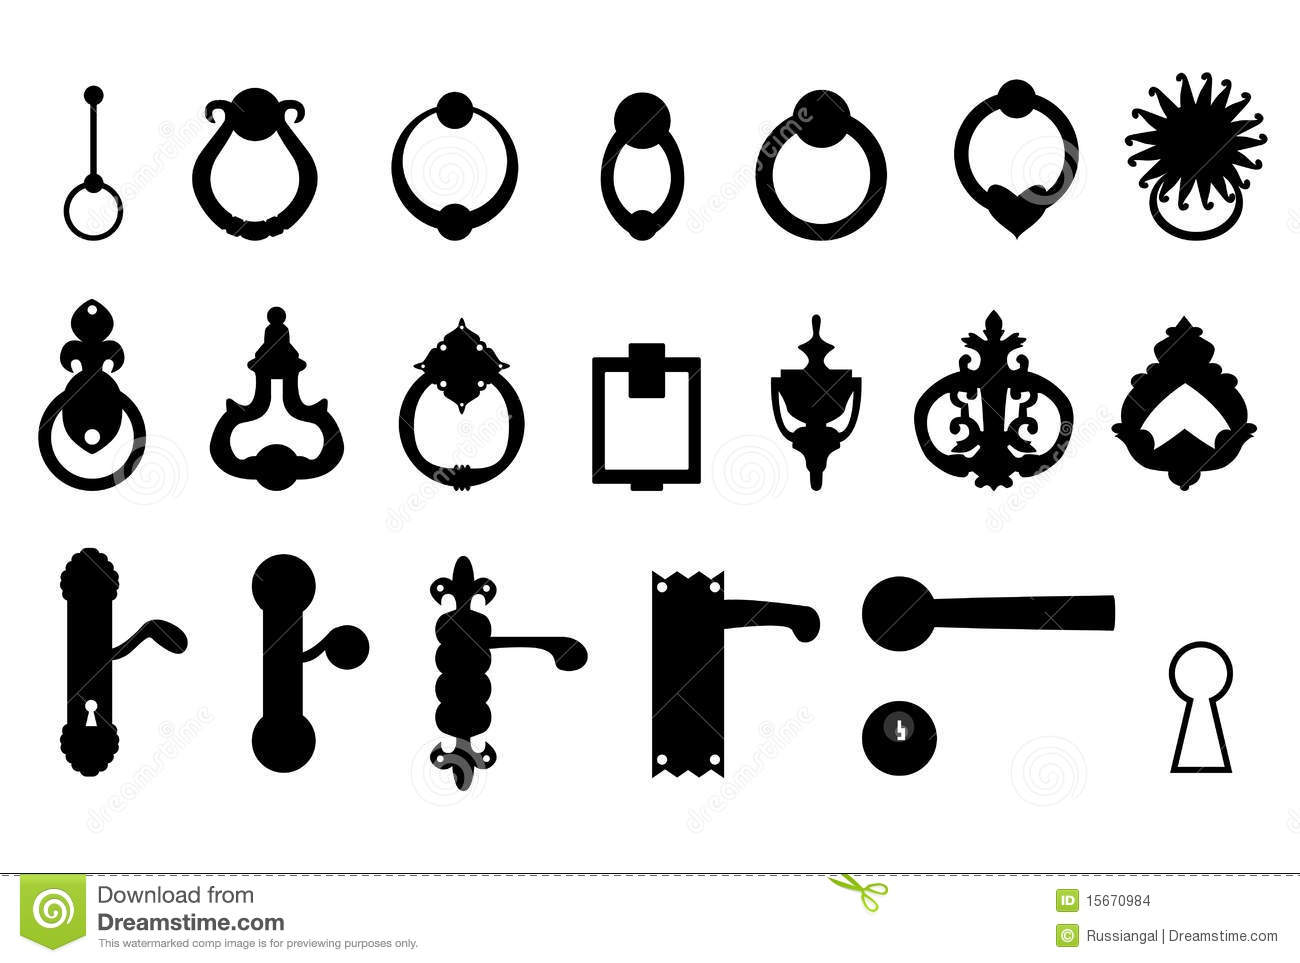 Door Handles Knockers Stock Vector Illustration Of